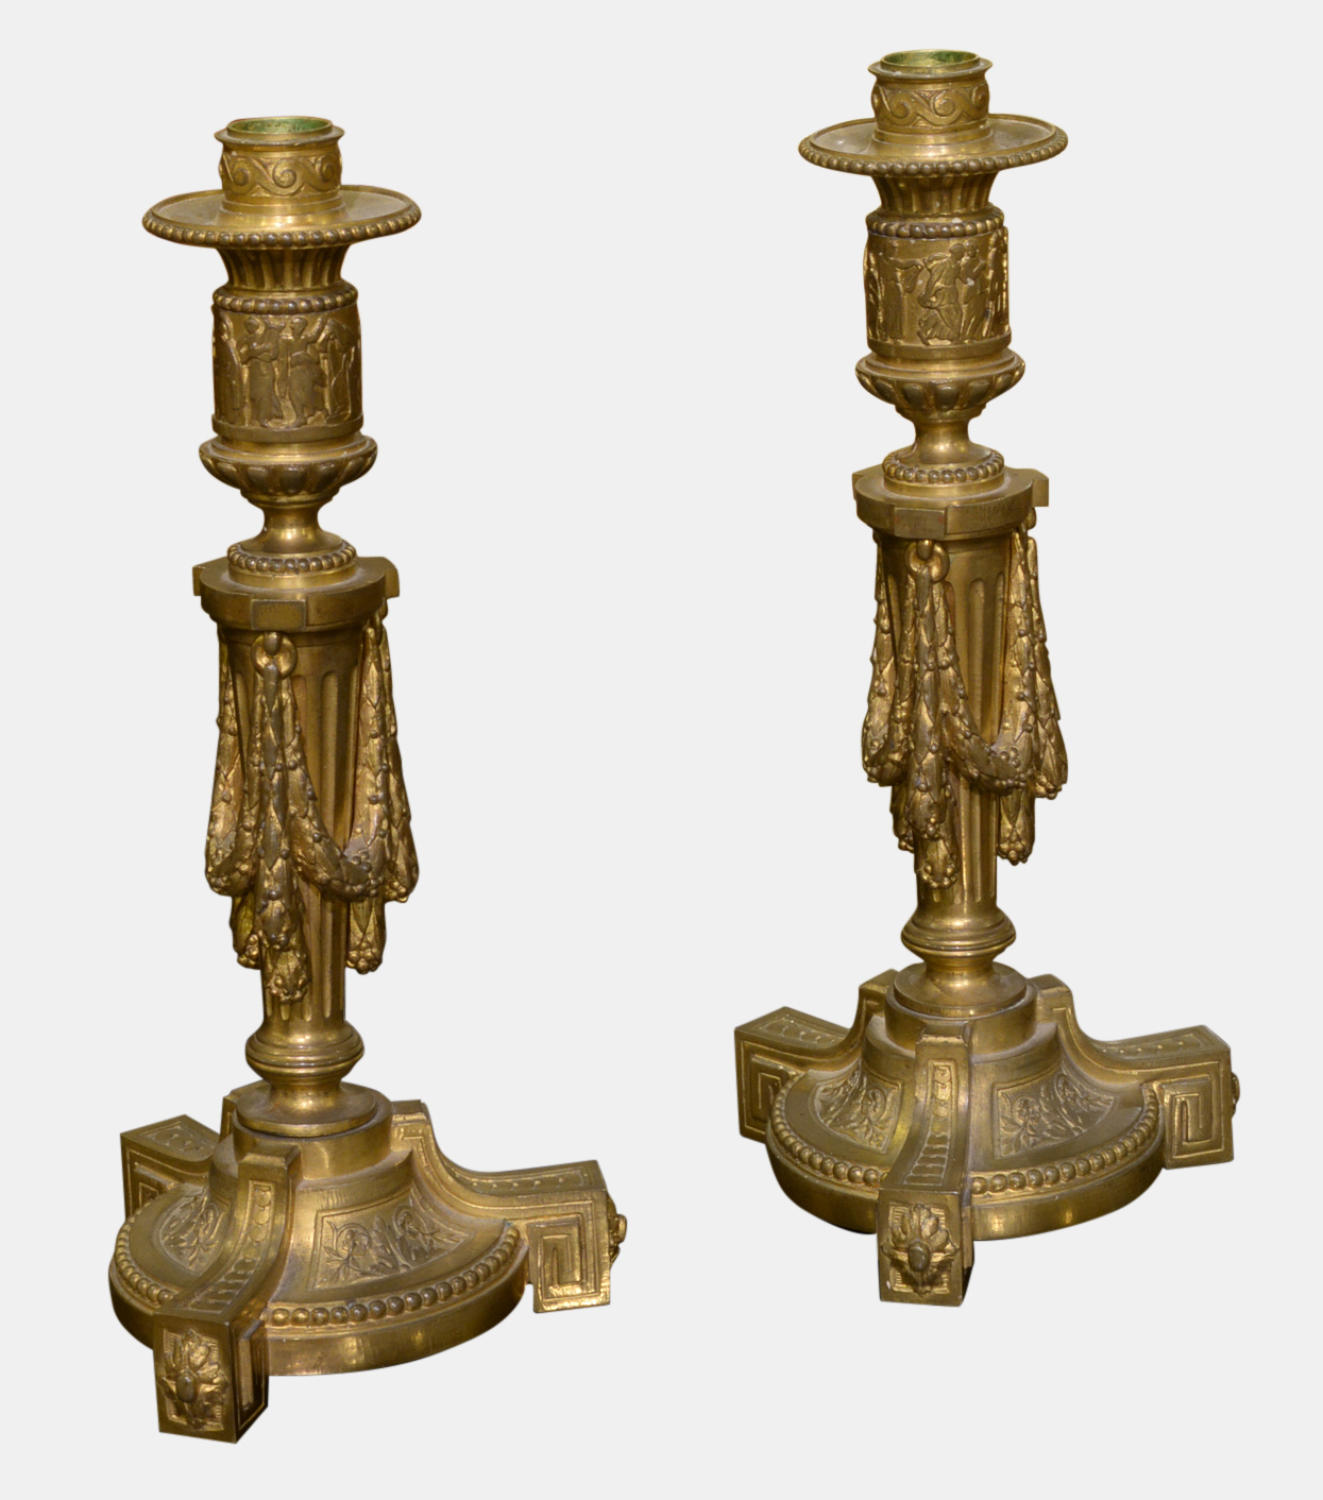 Pair of French Louis XVI Gilt Bronze Candlesticks